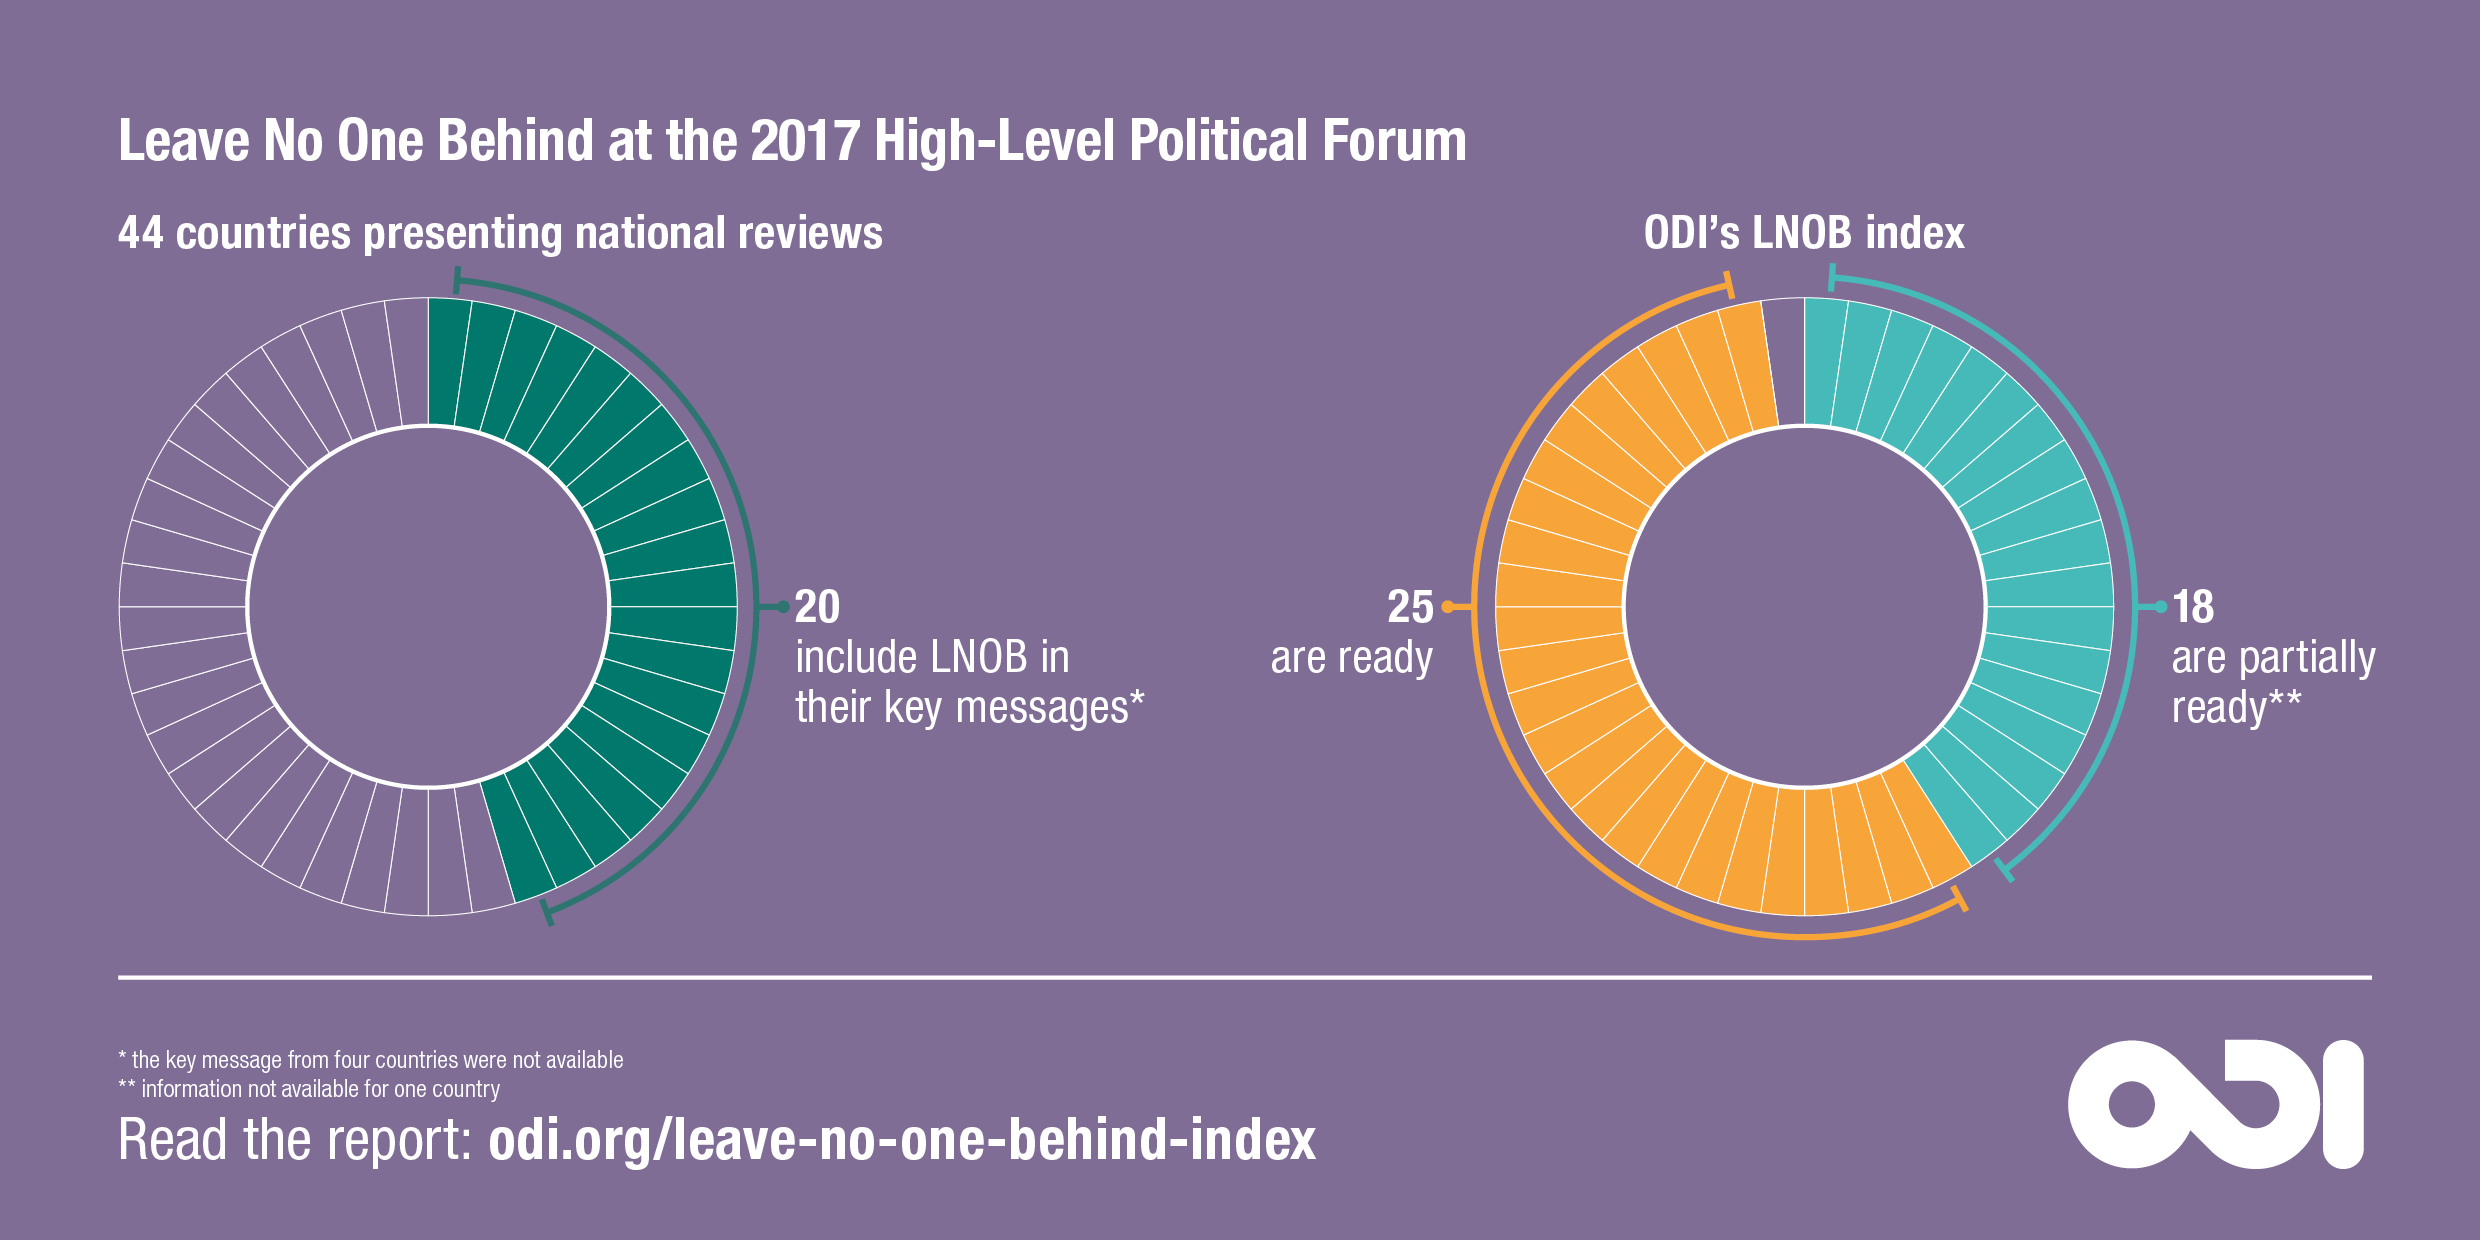 Leave No One Behind at the 2017 UN High-Level Political Forum